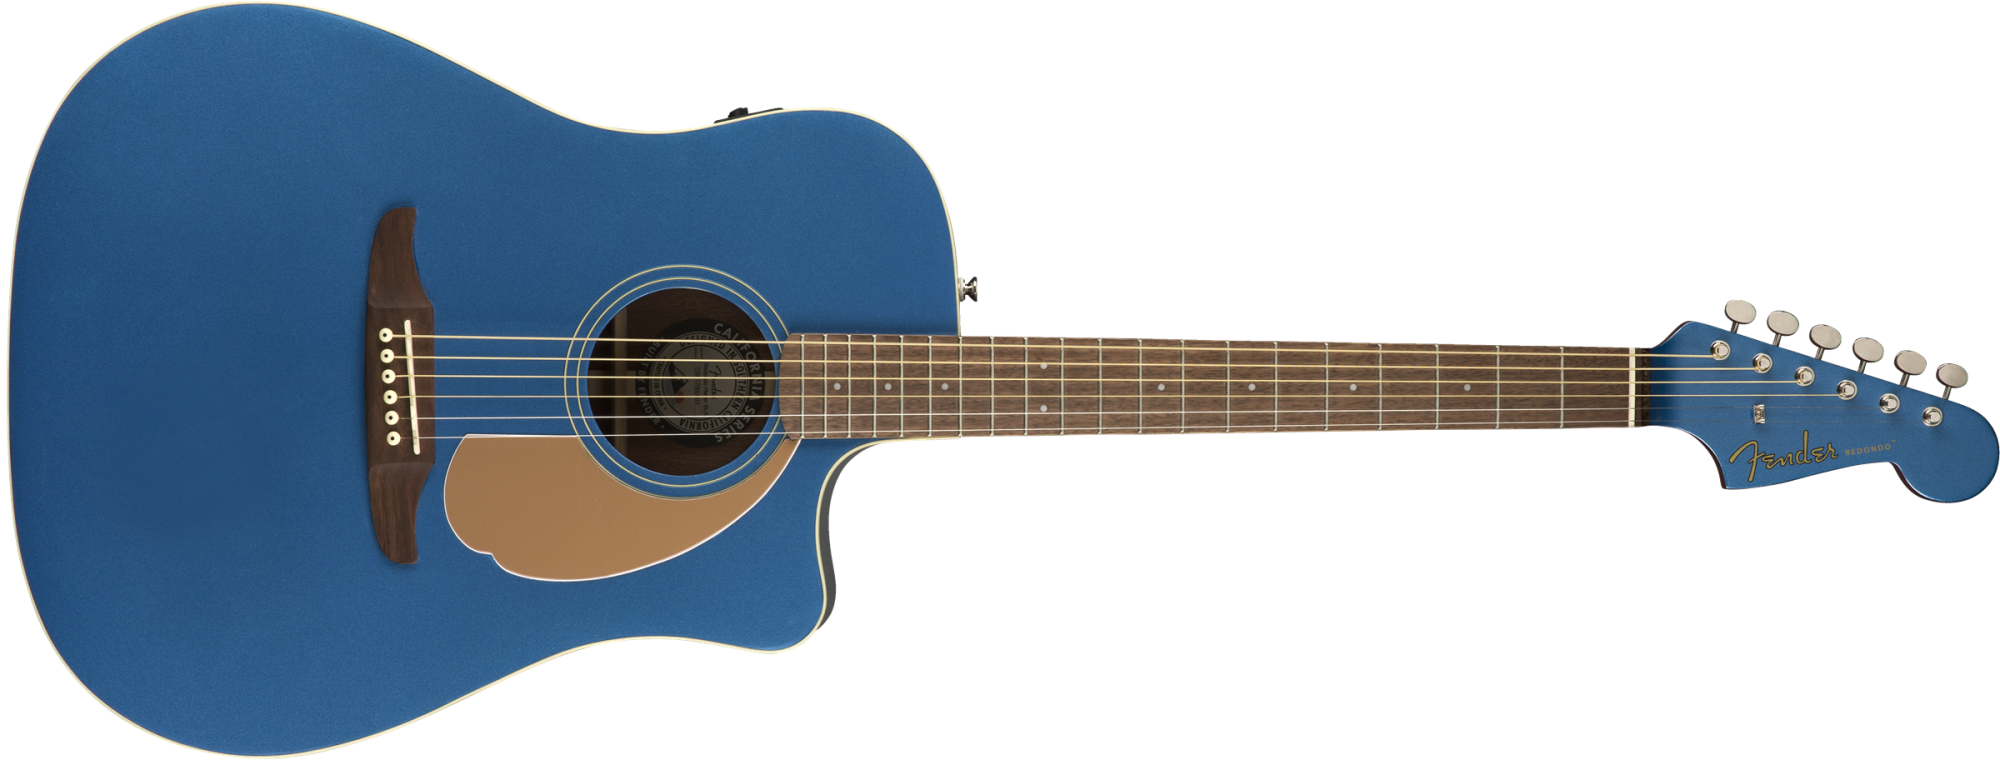 Fender Redondo Player Acoustic-Electric Guitar, Belmont Blue